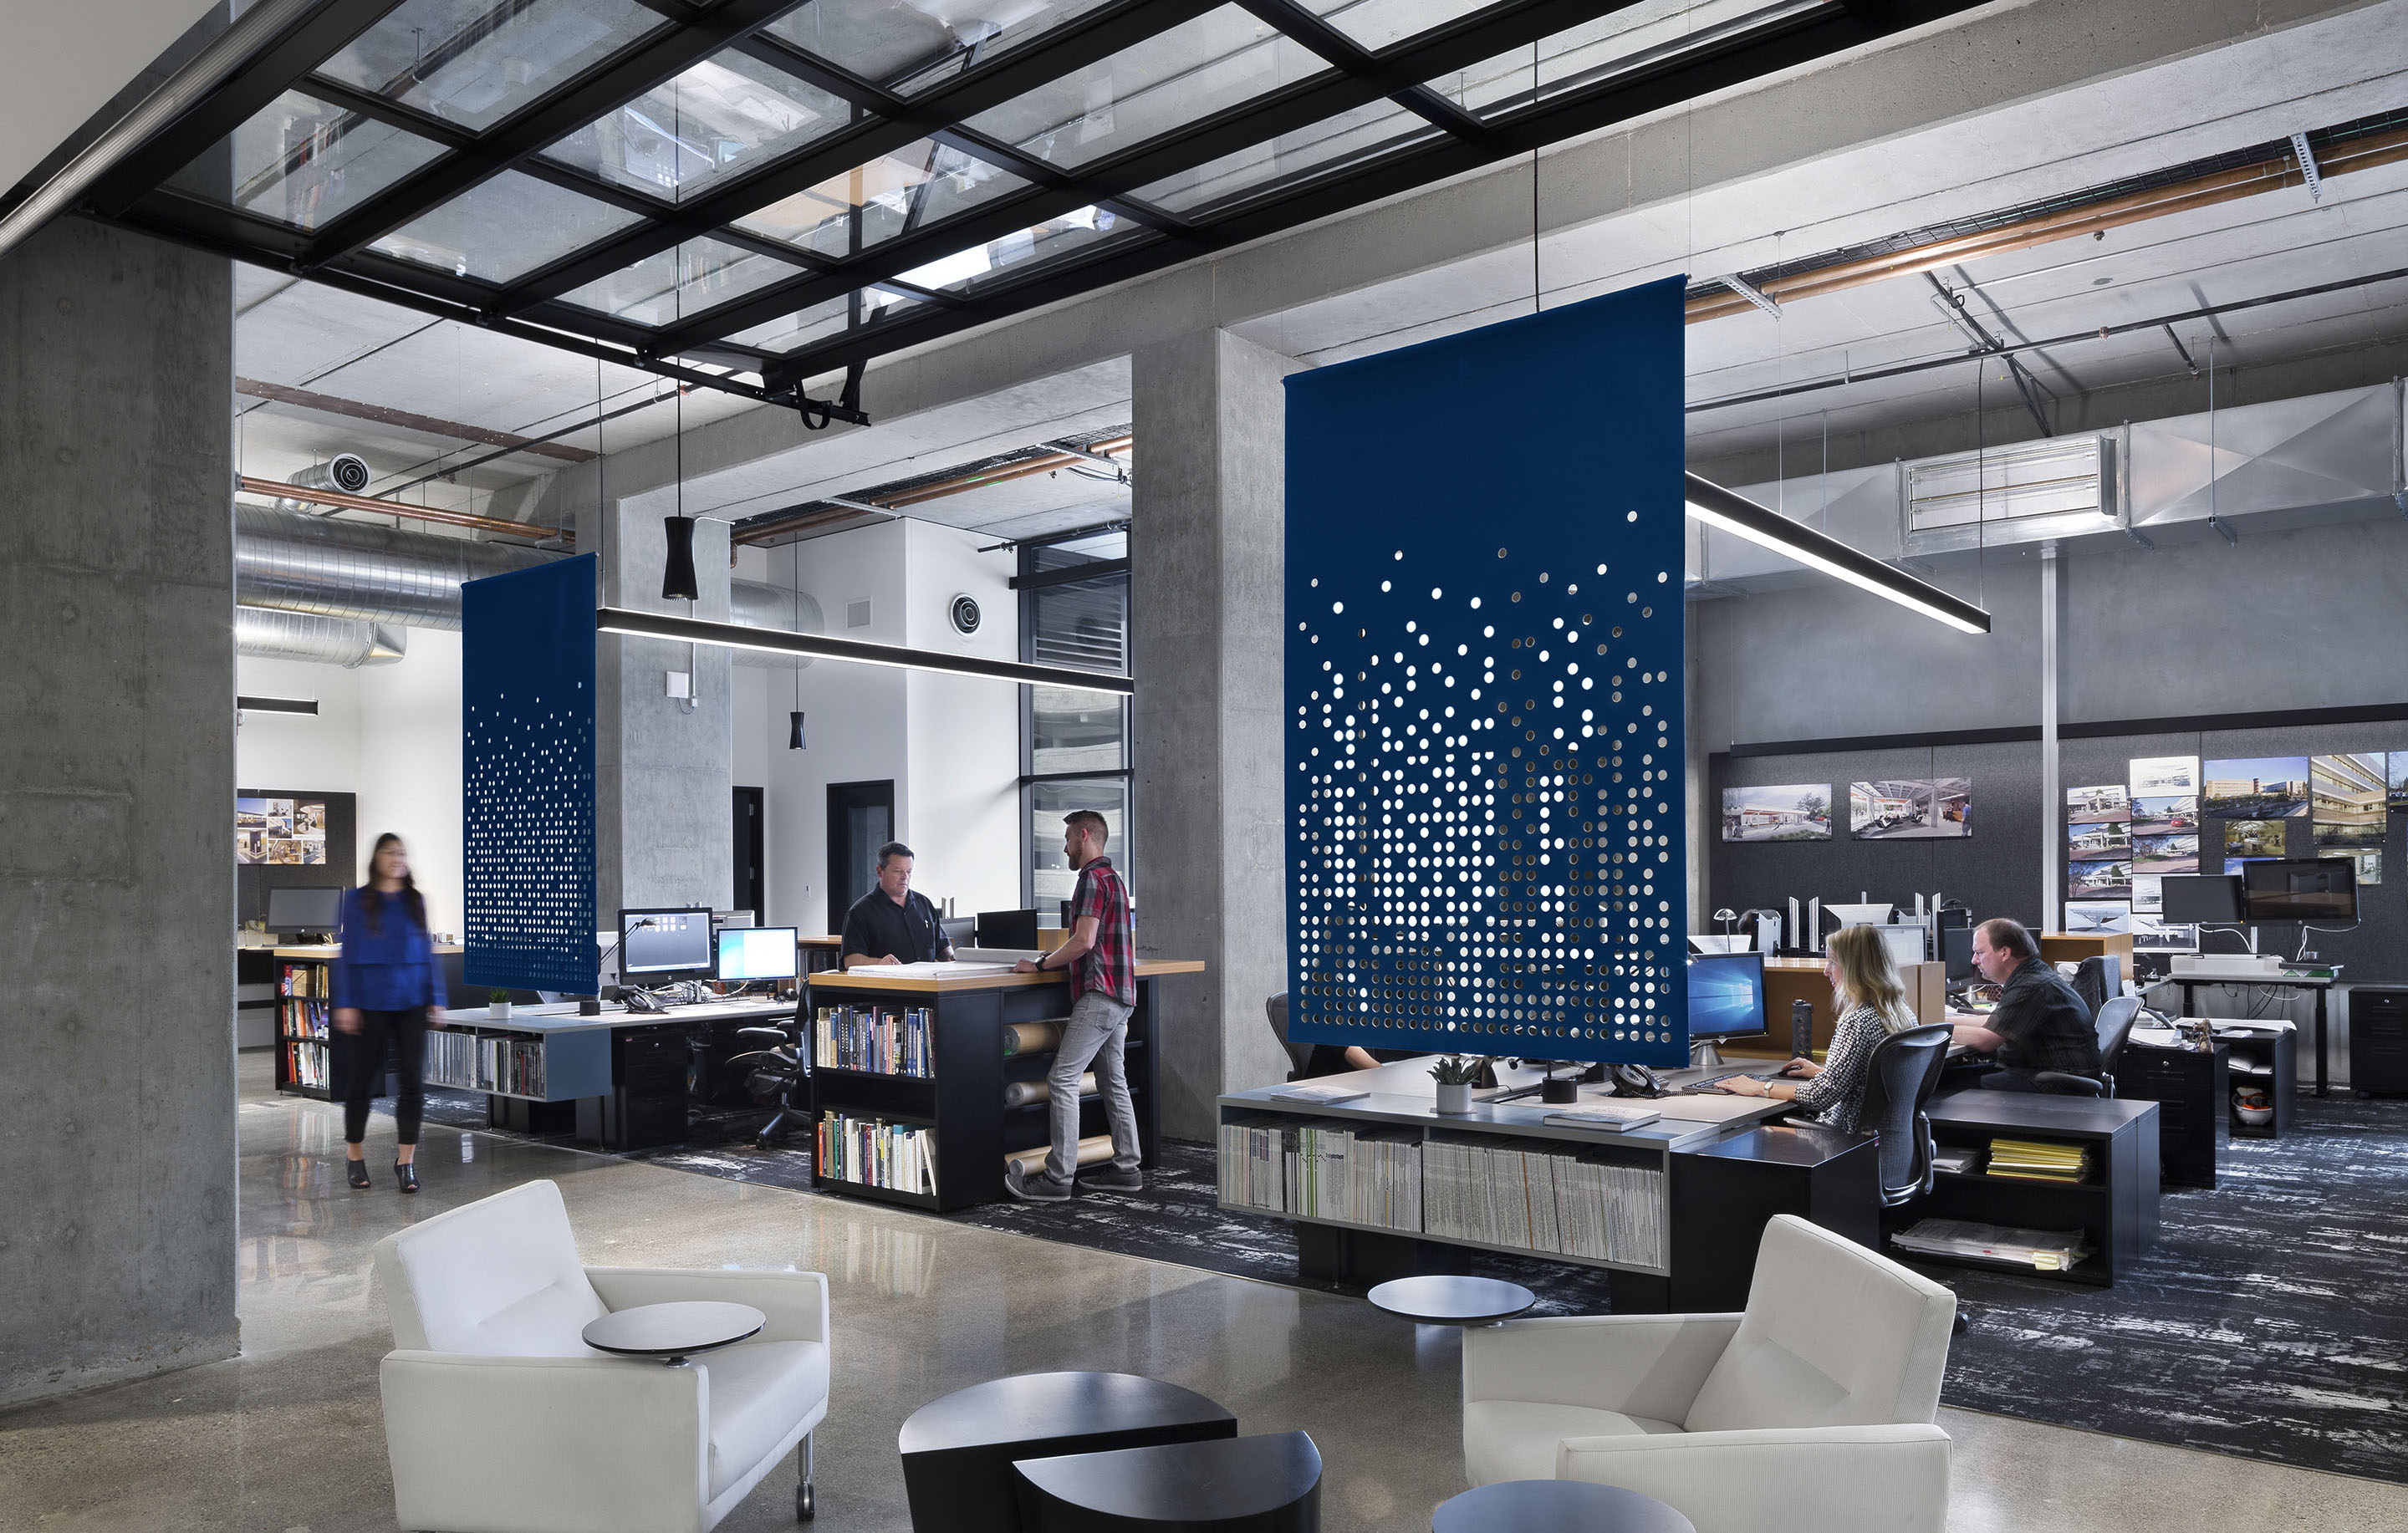 Urban office design Reception Top Projects 2016 Large And Small Scale Office Space Houzz Top Projects 2016 Large And Small Scale Office Space Tlcd Today